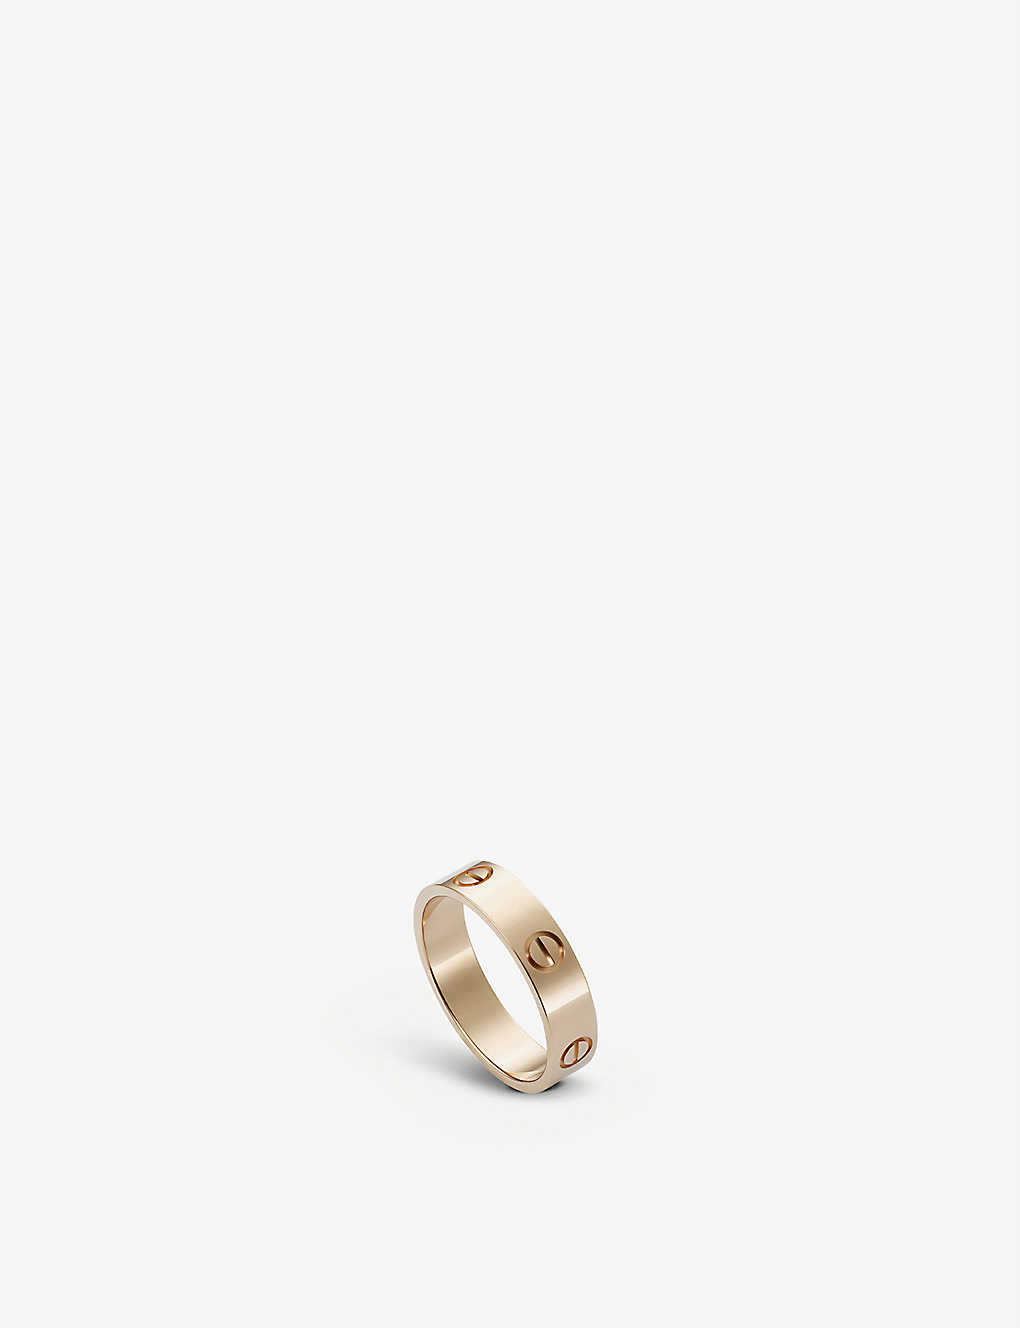 CARTIER LOVE 18ct pinkgold ring